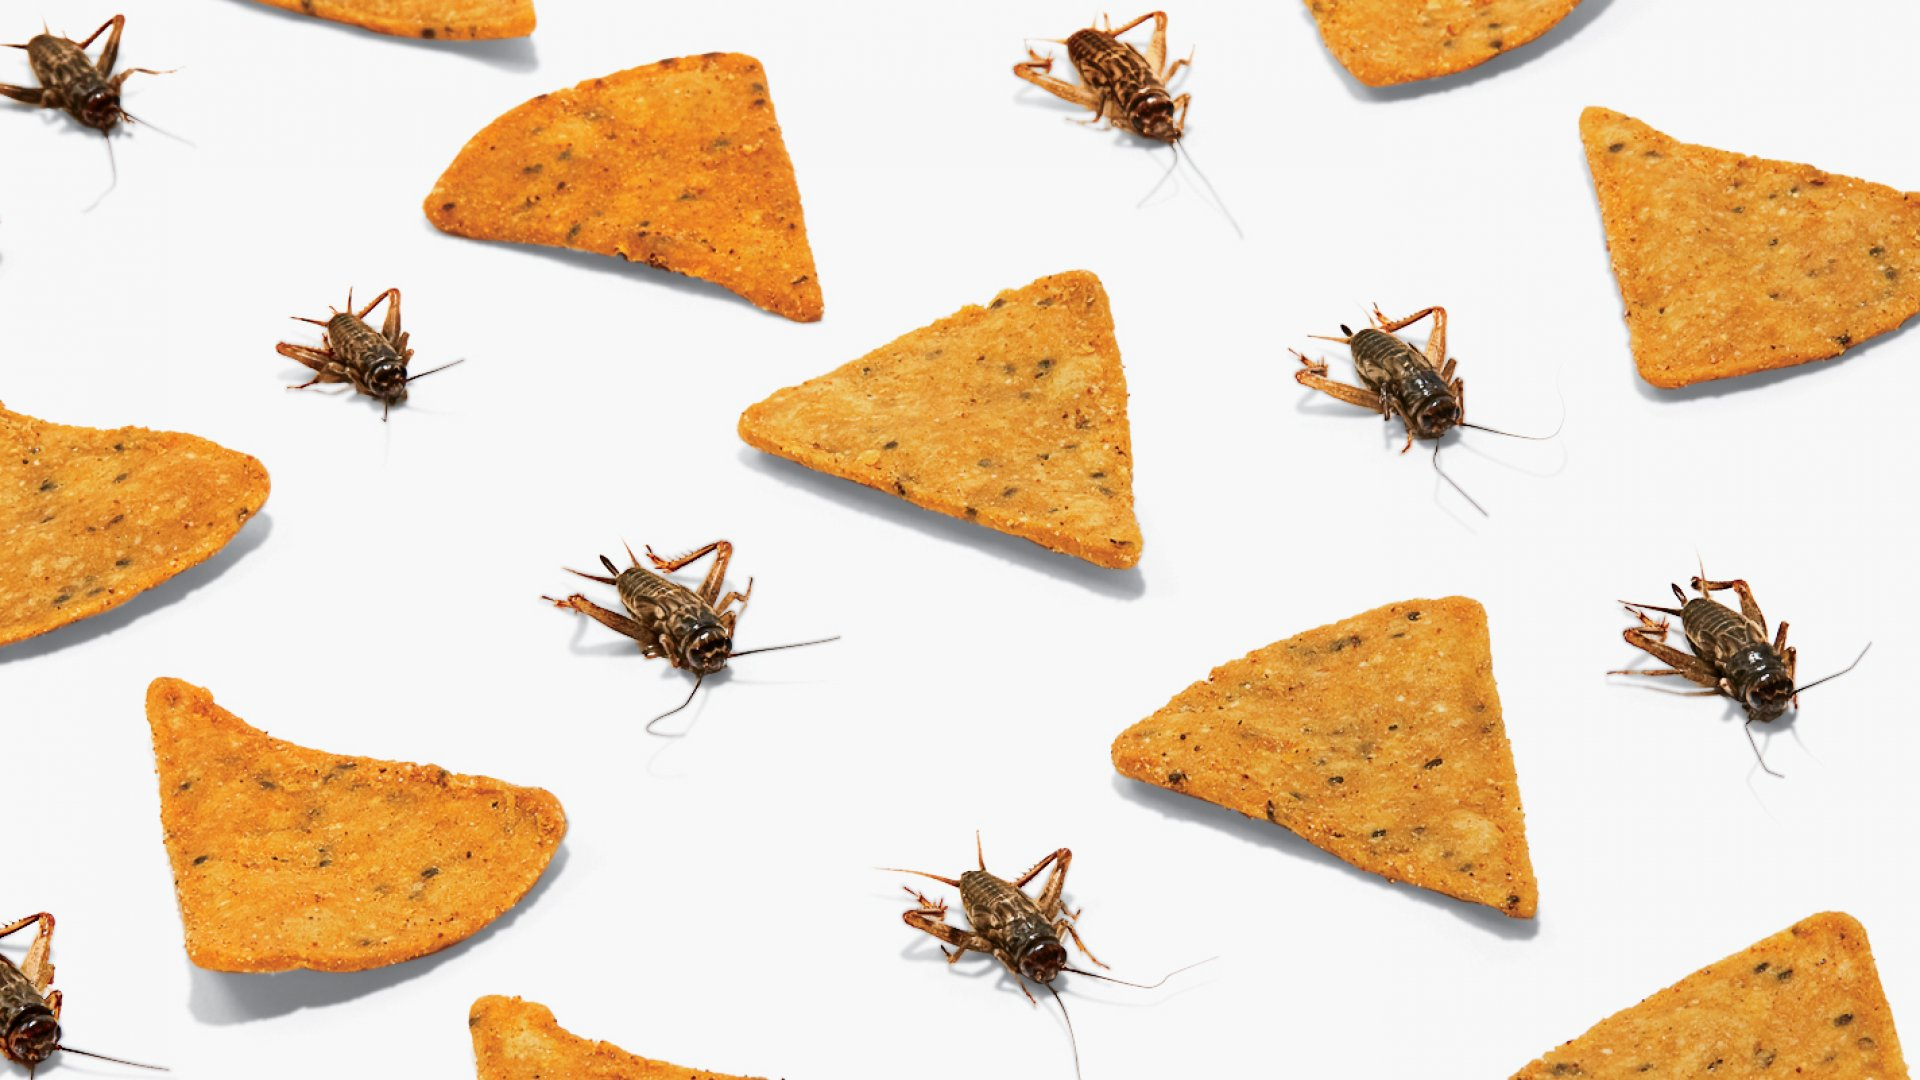 Chirps chips – in Sriracha, BBQ, and cheddar flavors – along with the creatures that give them their protein punch.